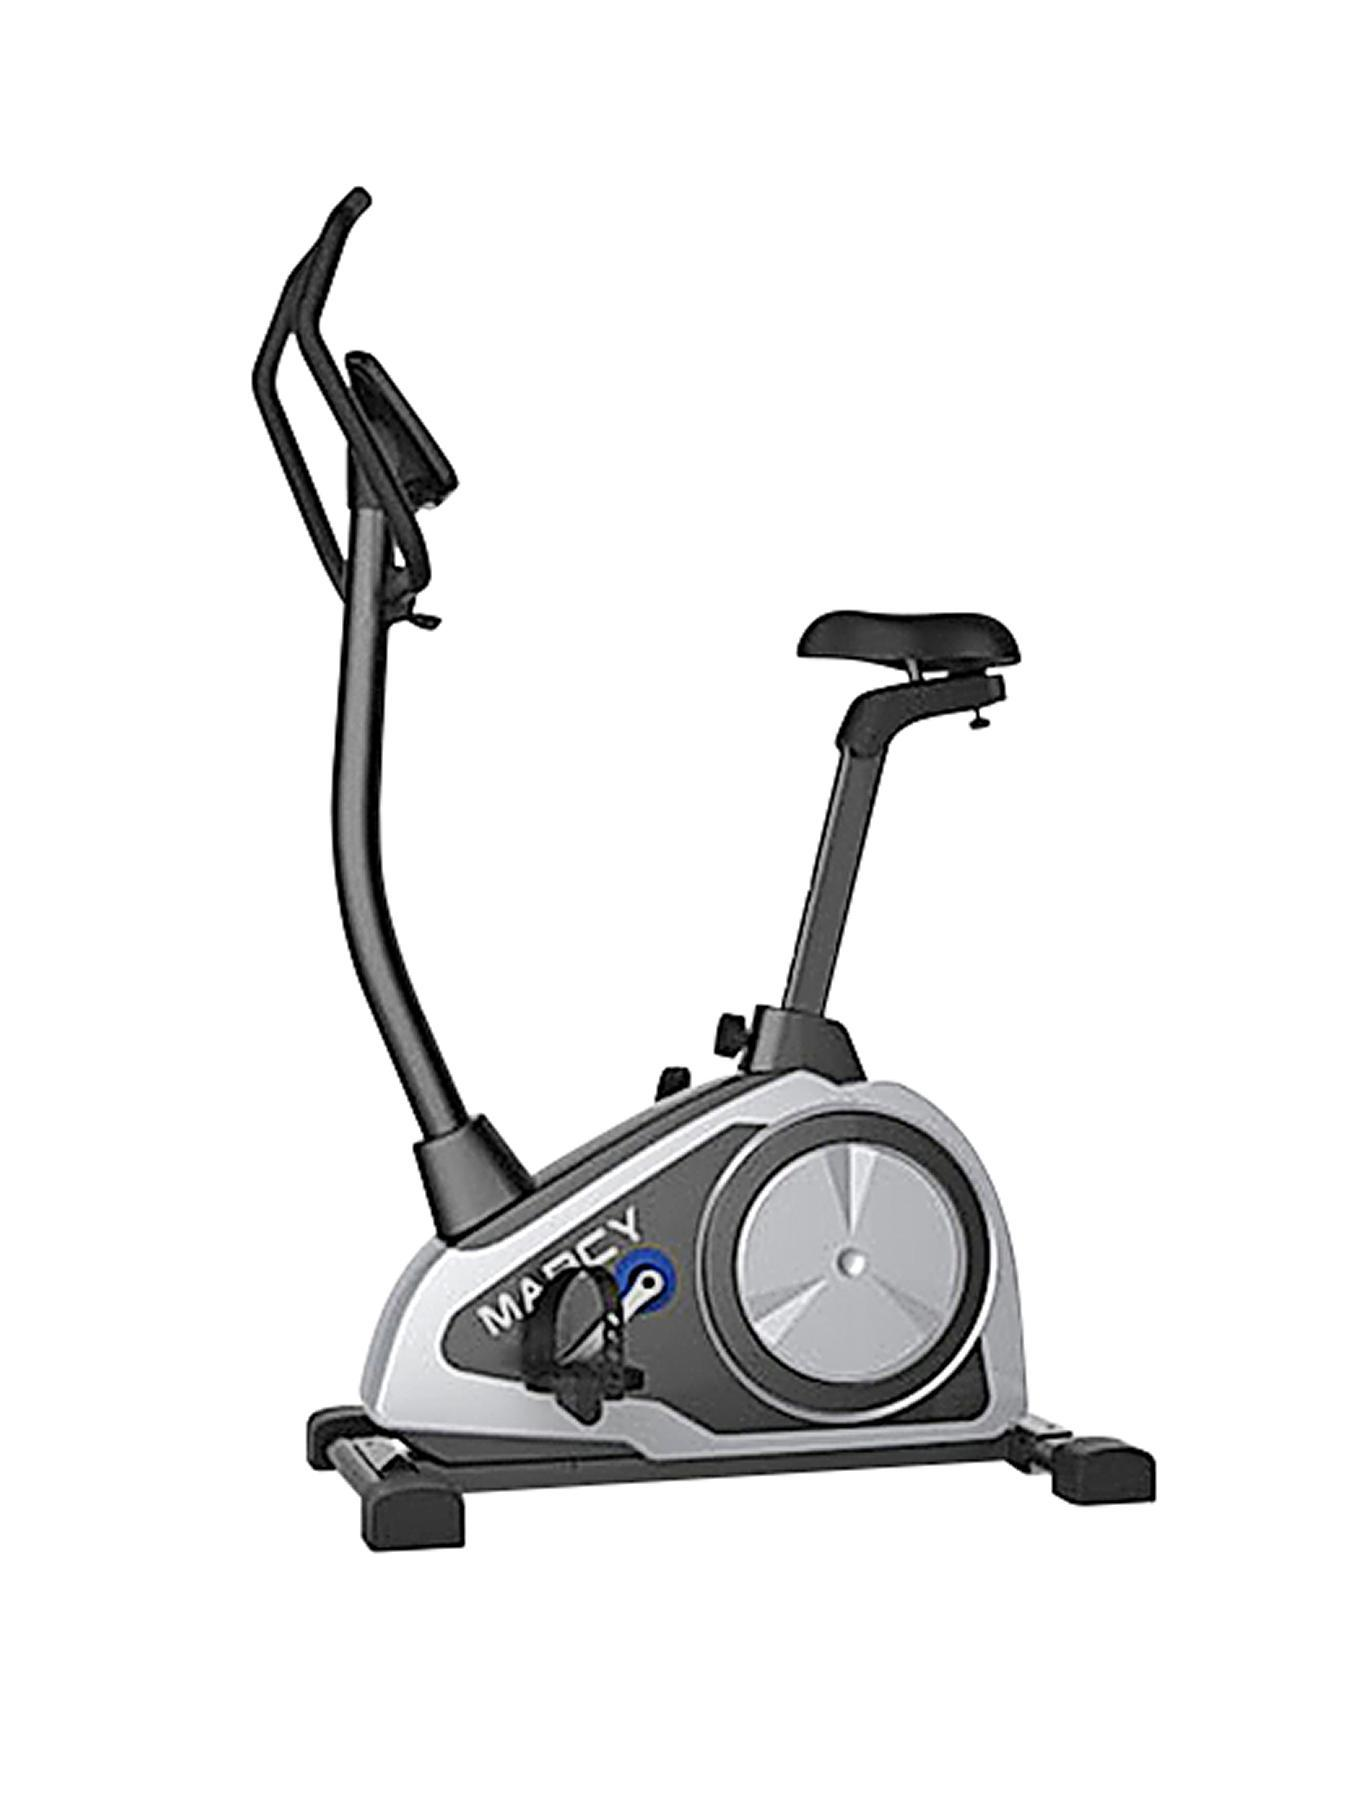 Marcy B80 Cardio Star Exercise Bike